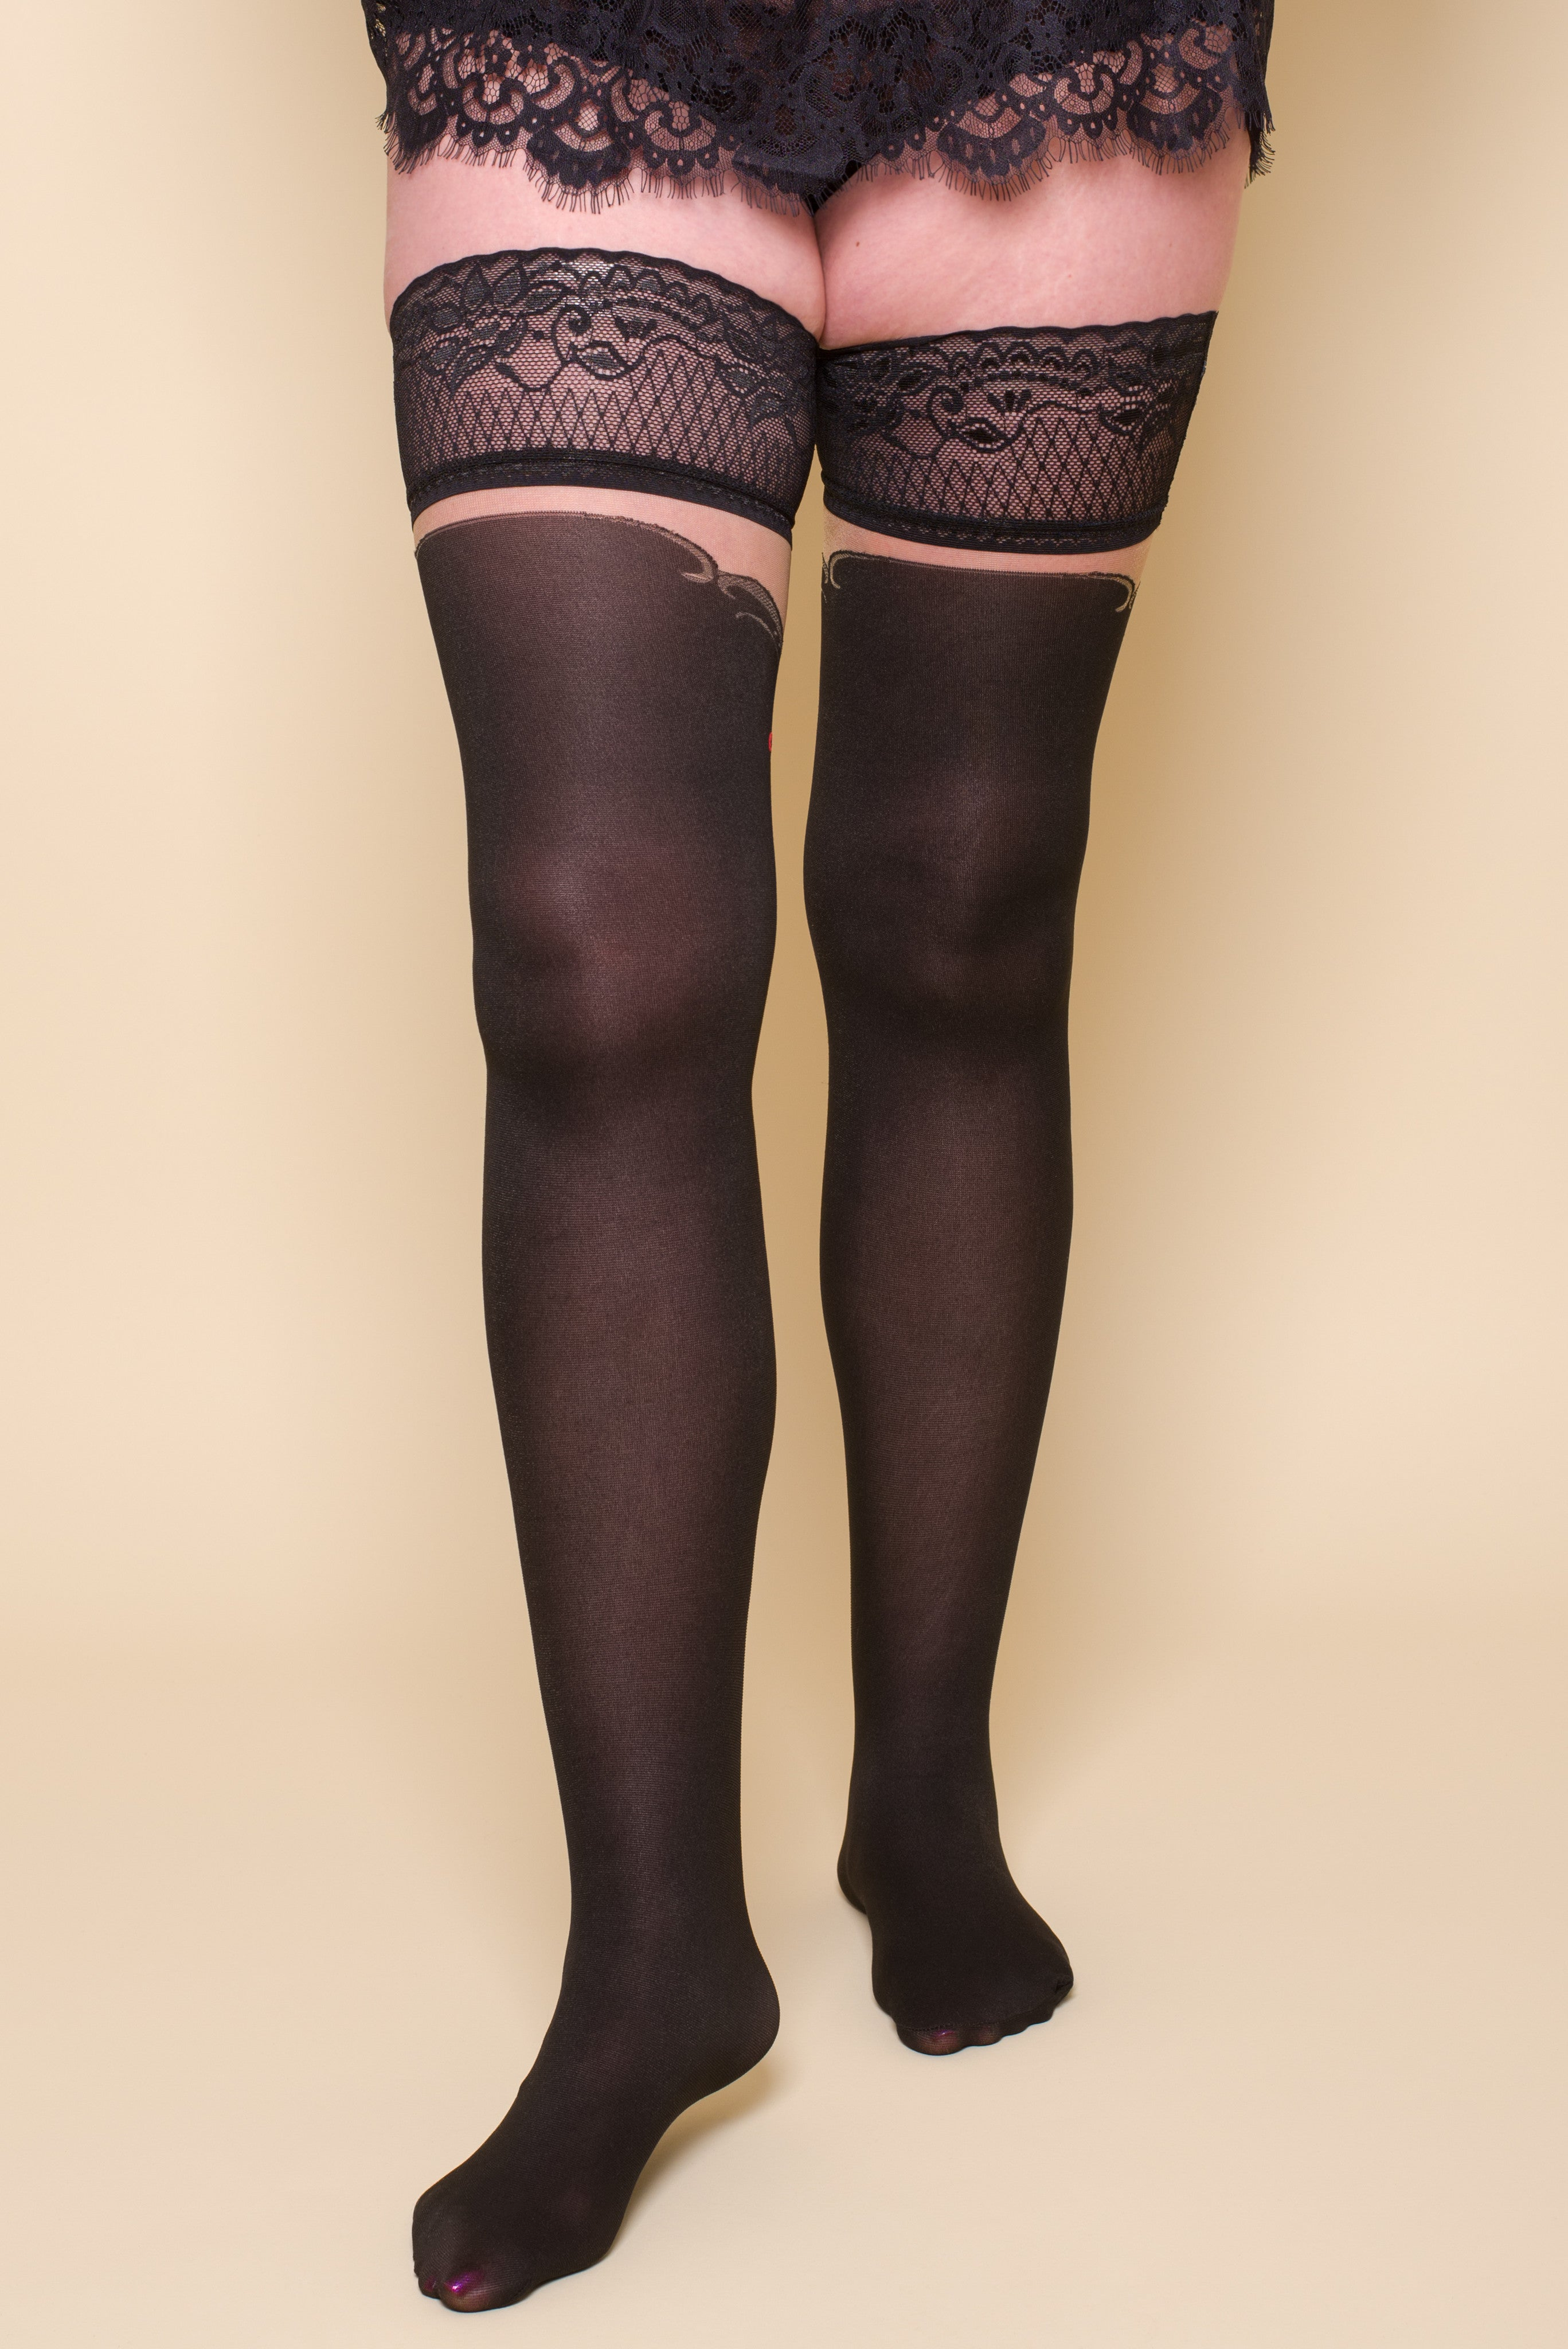 OPAQUE BLACK AND RED HOLLY HOLD-UPS STOCKINGS